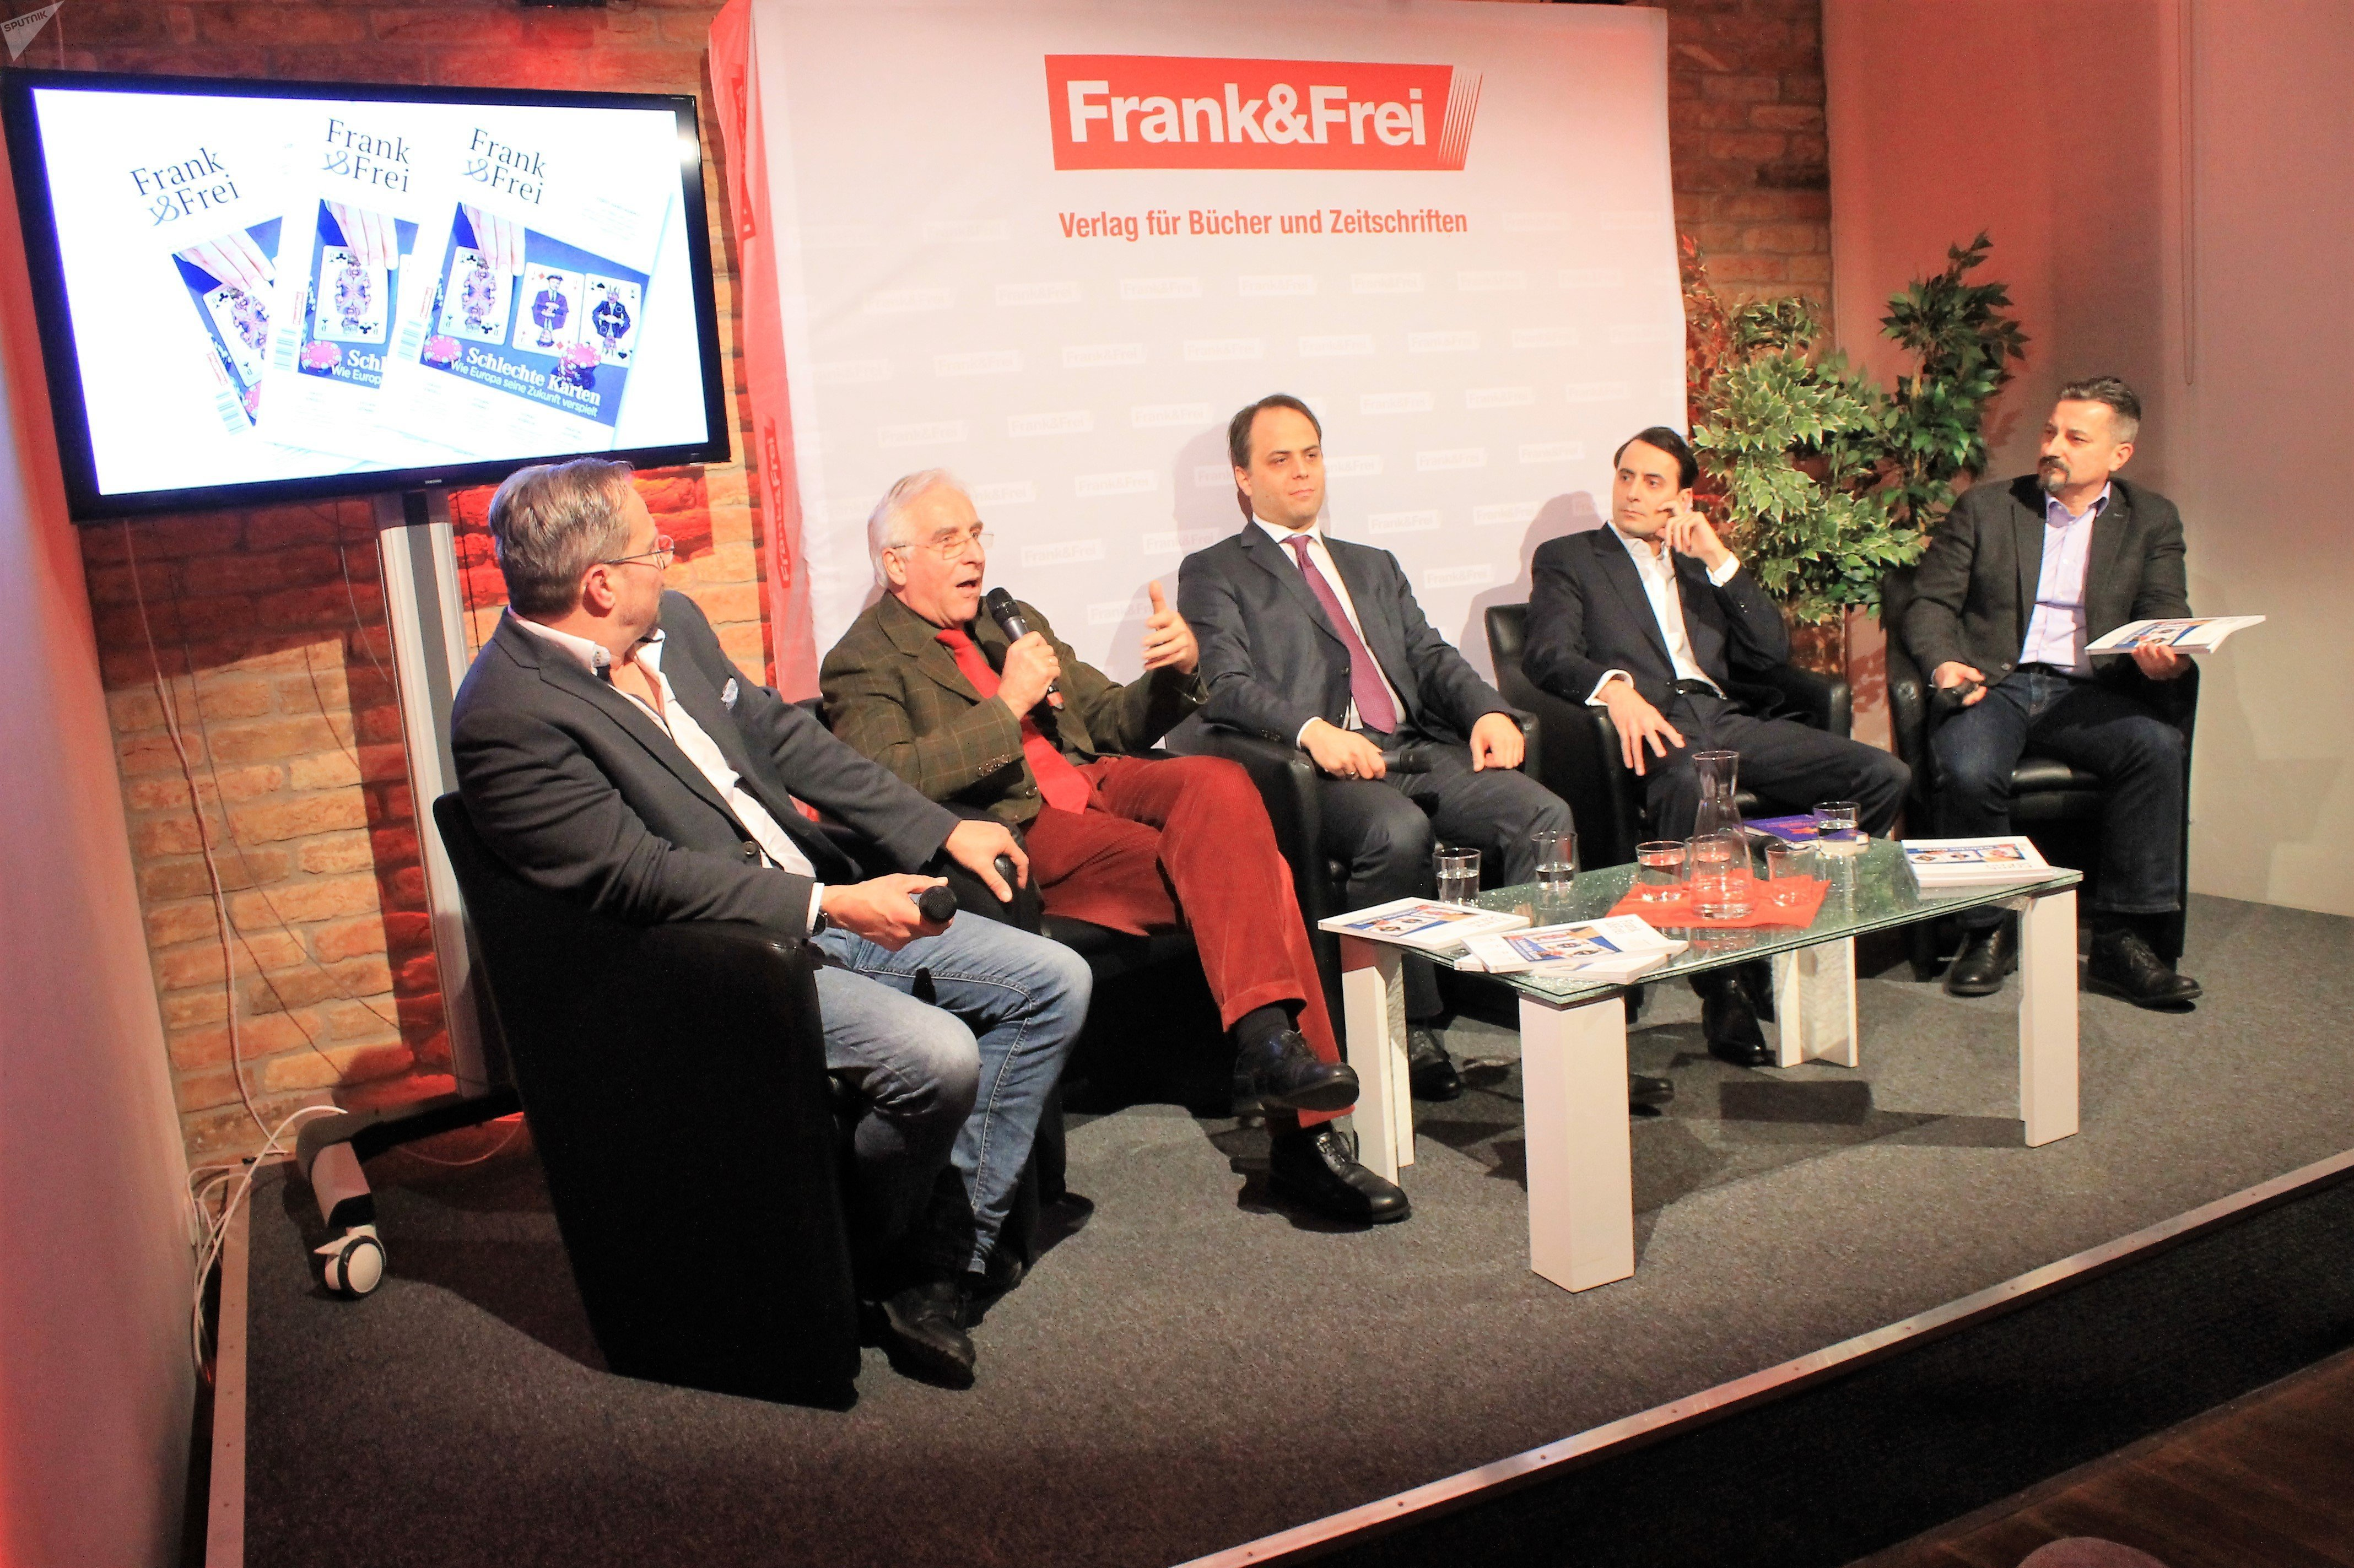 Discussion with the editors of Frank&Frei